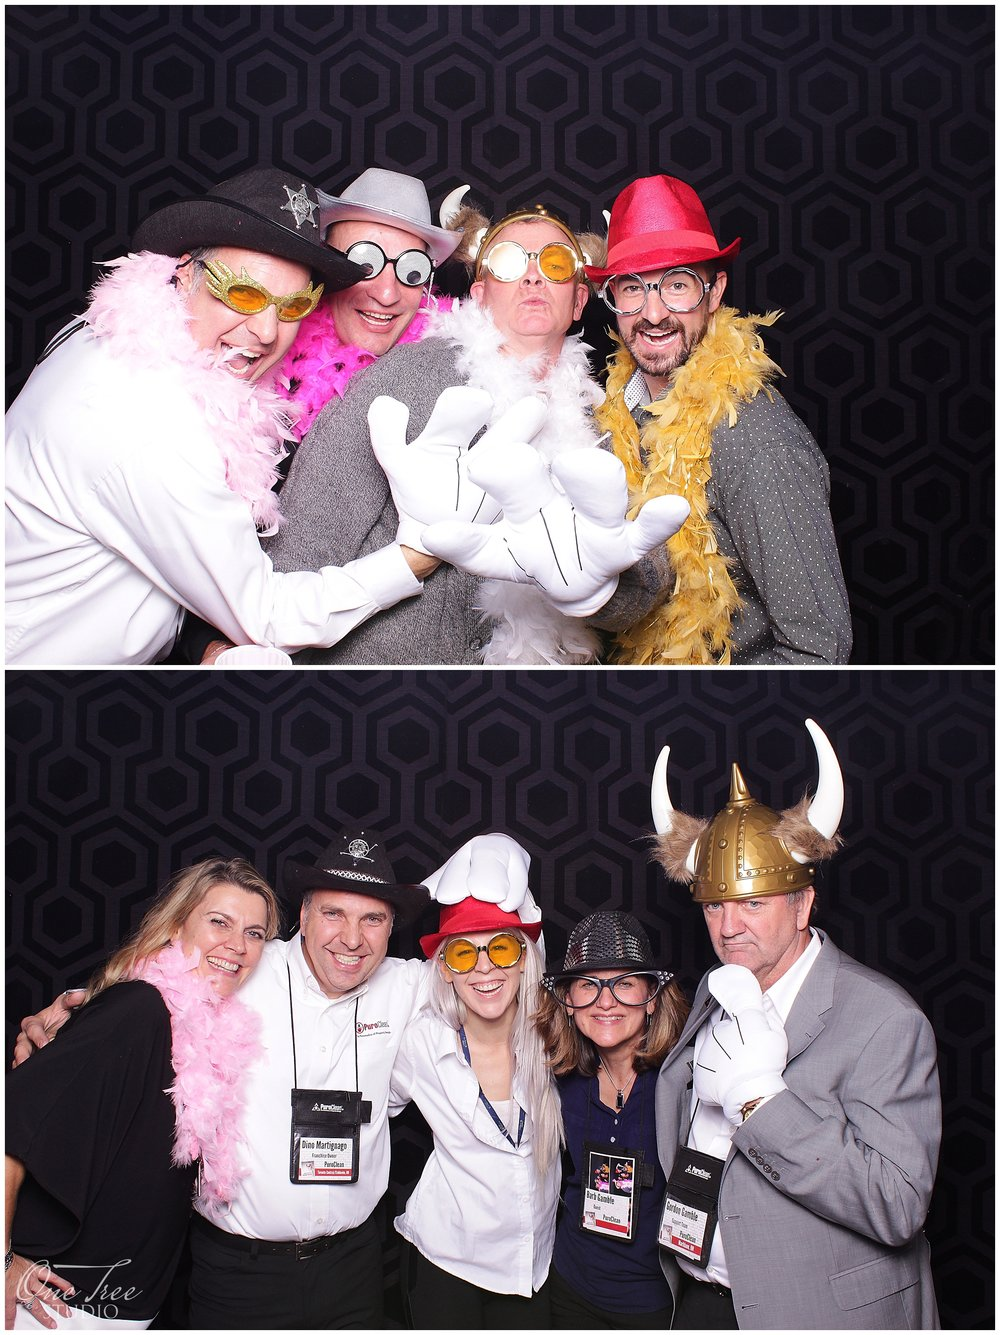 Toronto Photo Booth | Niagara Photo Booth | One Tree Studio Inc.